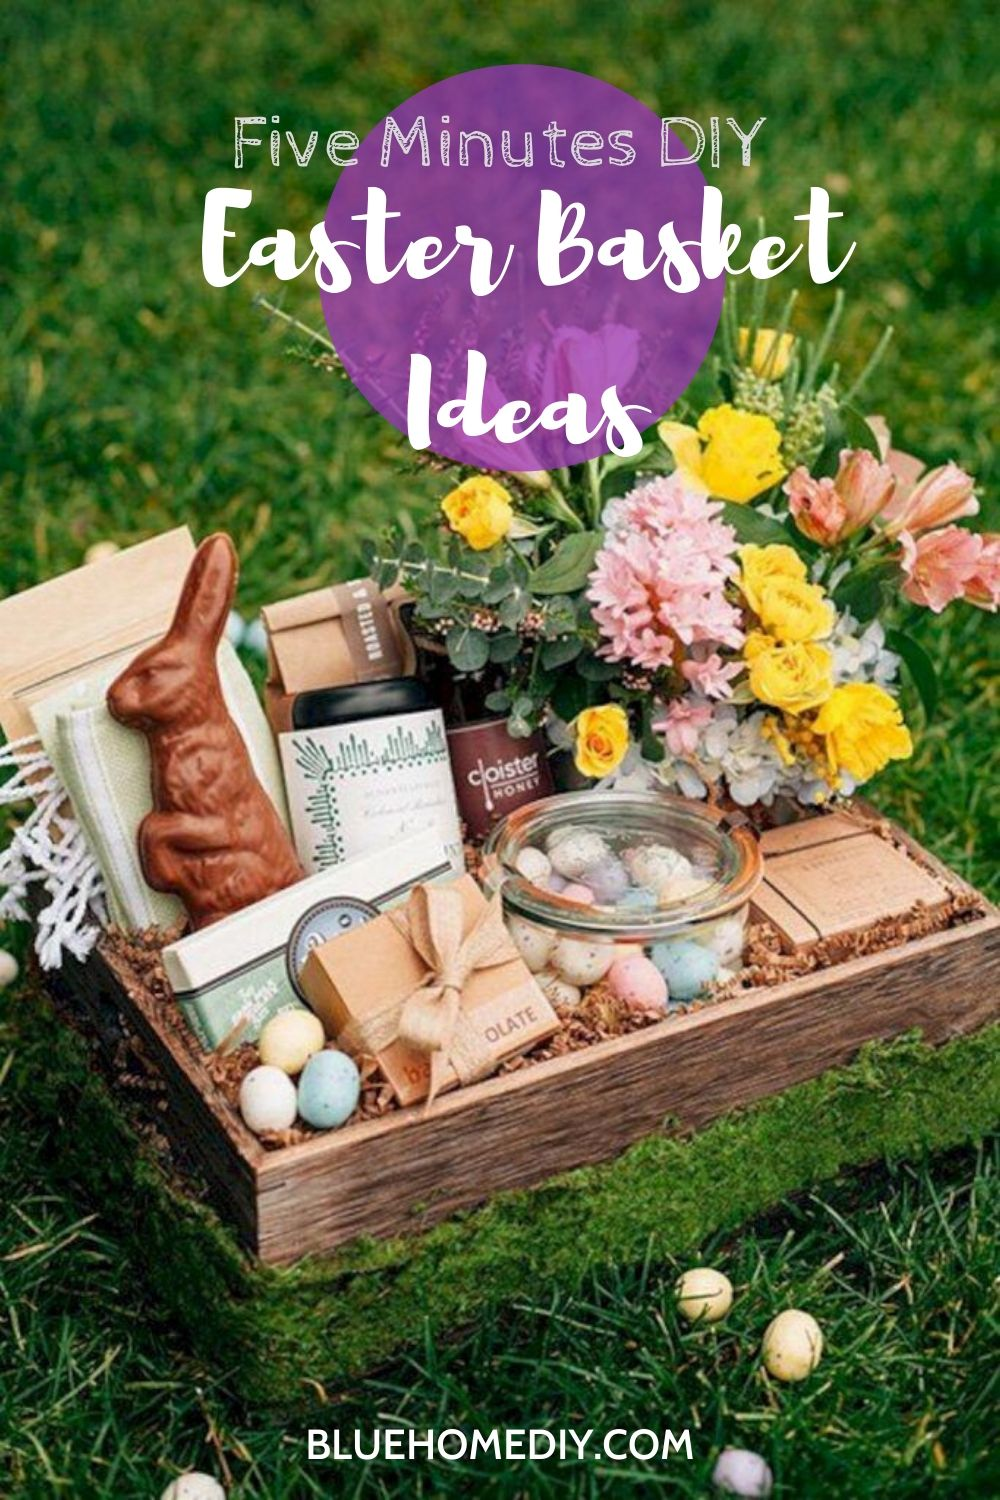 Easter Basket Ideas (Easy DIY Easter Inspirations)